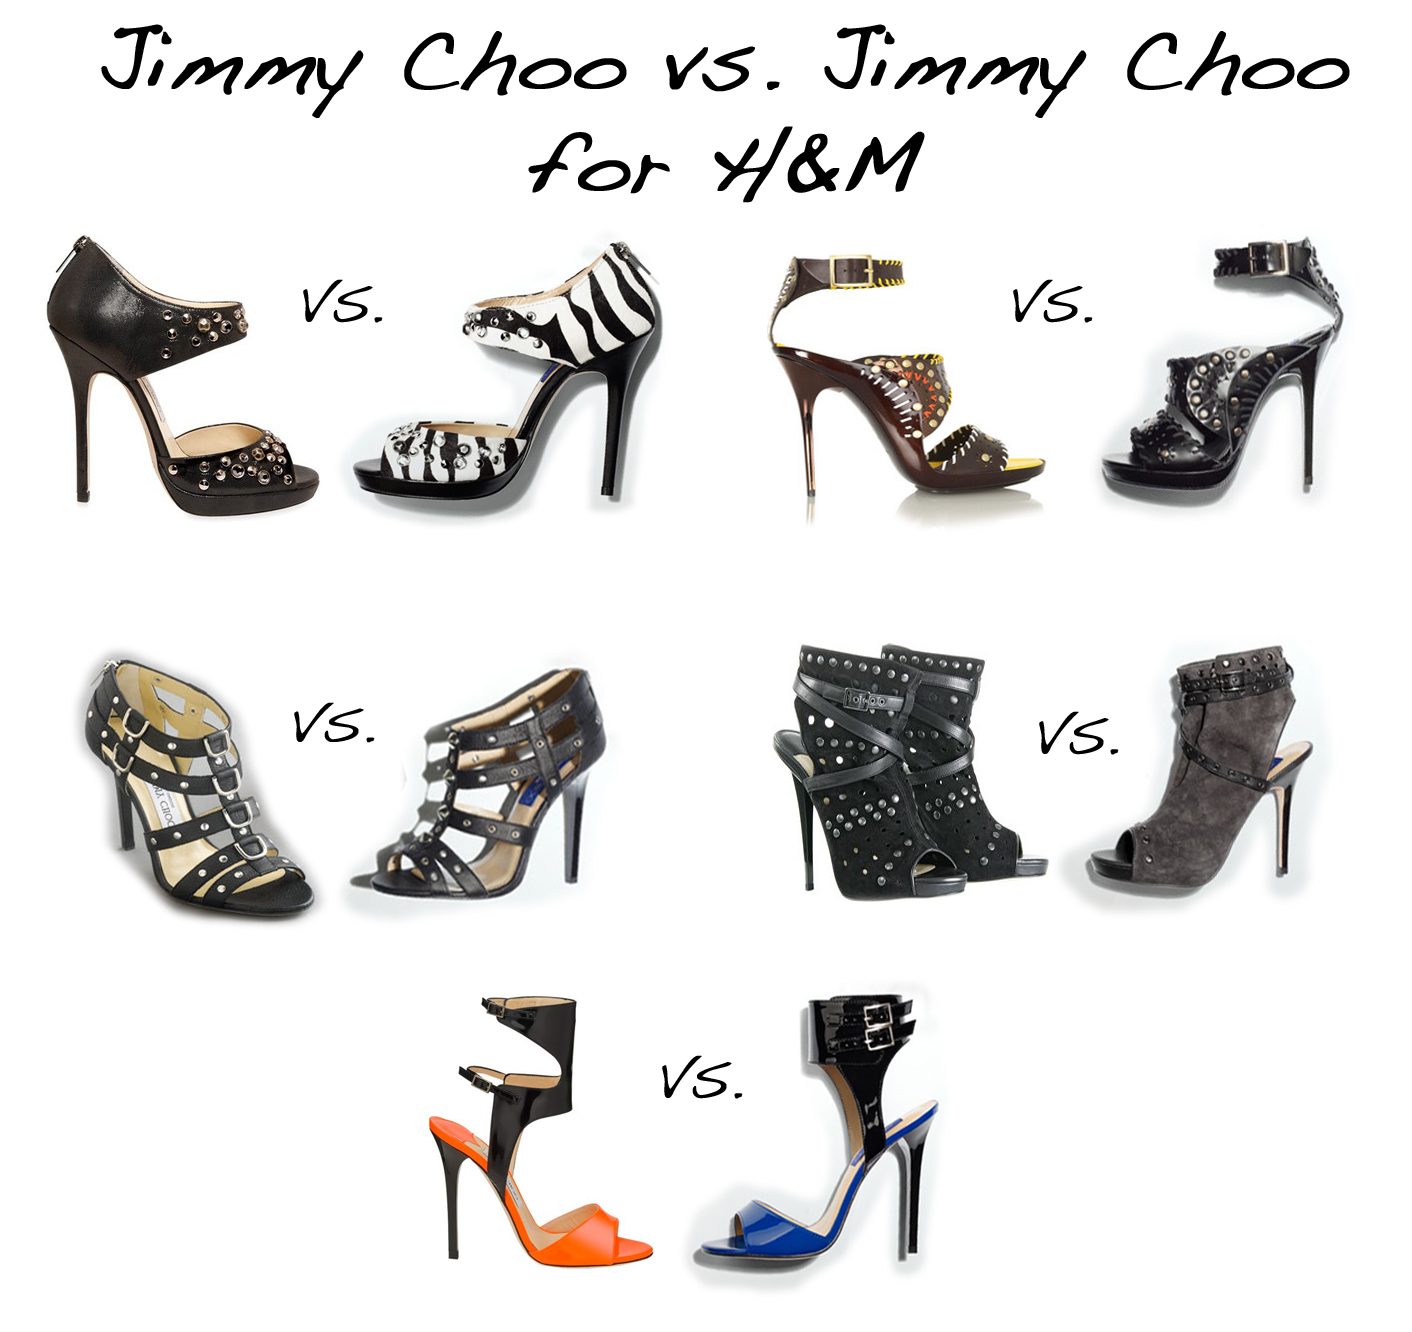 [Jimmy+Choo+vs.+Jimmy+Choo+for+H&m]